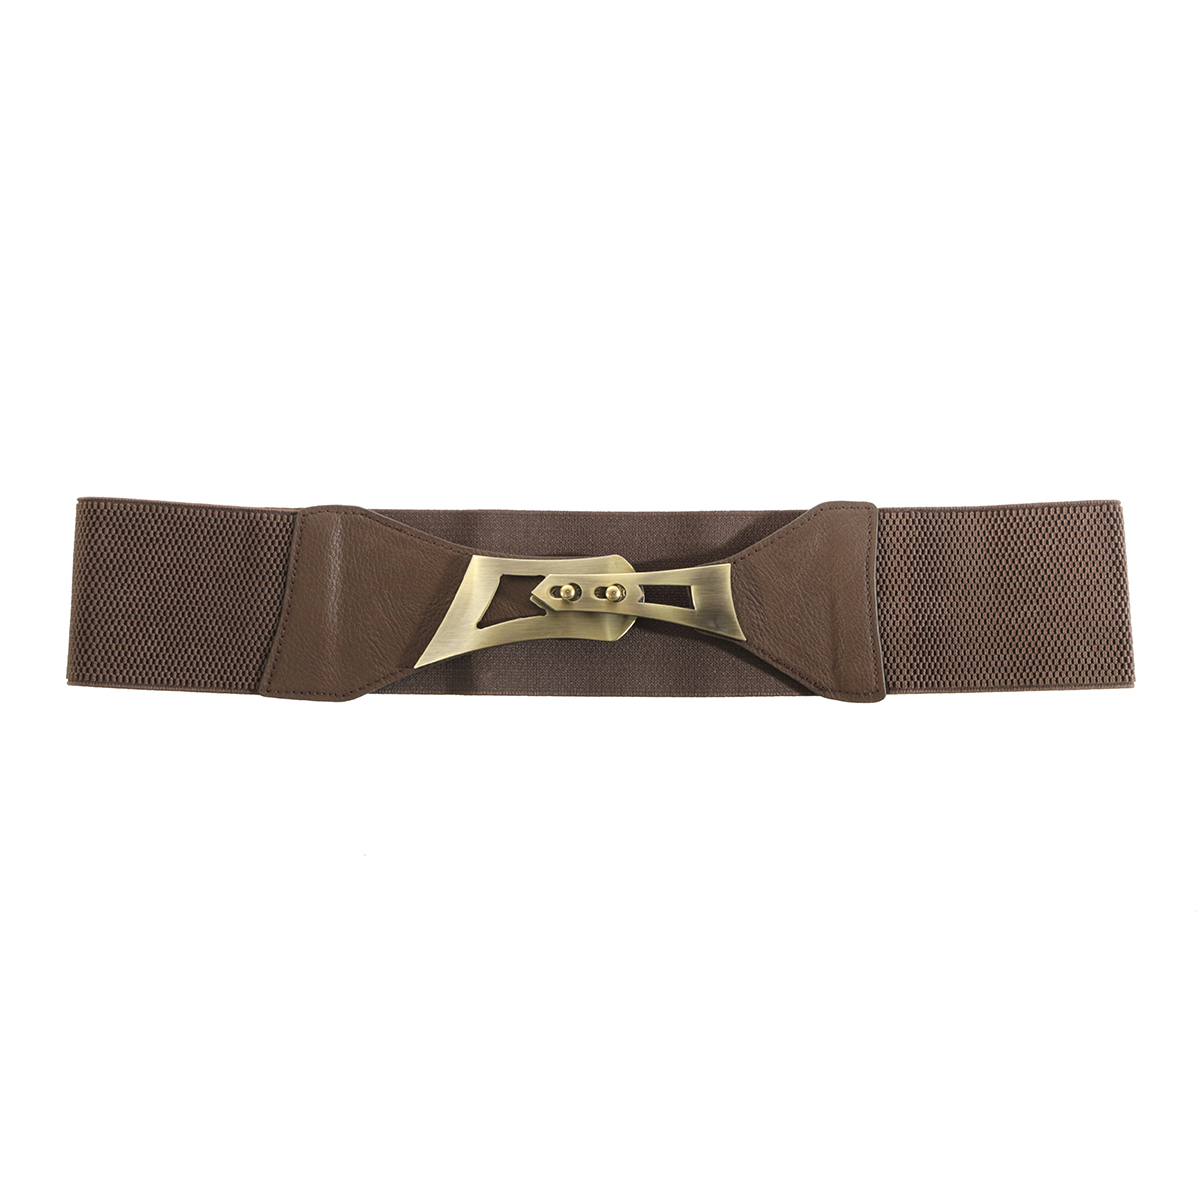 "DK BROWN 35"" BRONZE BUCKLE Belt"